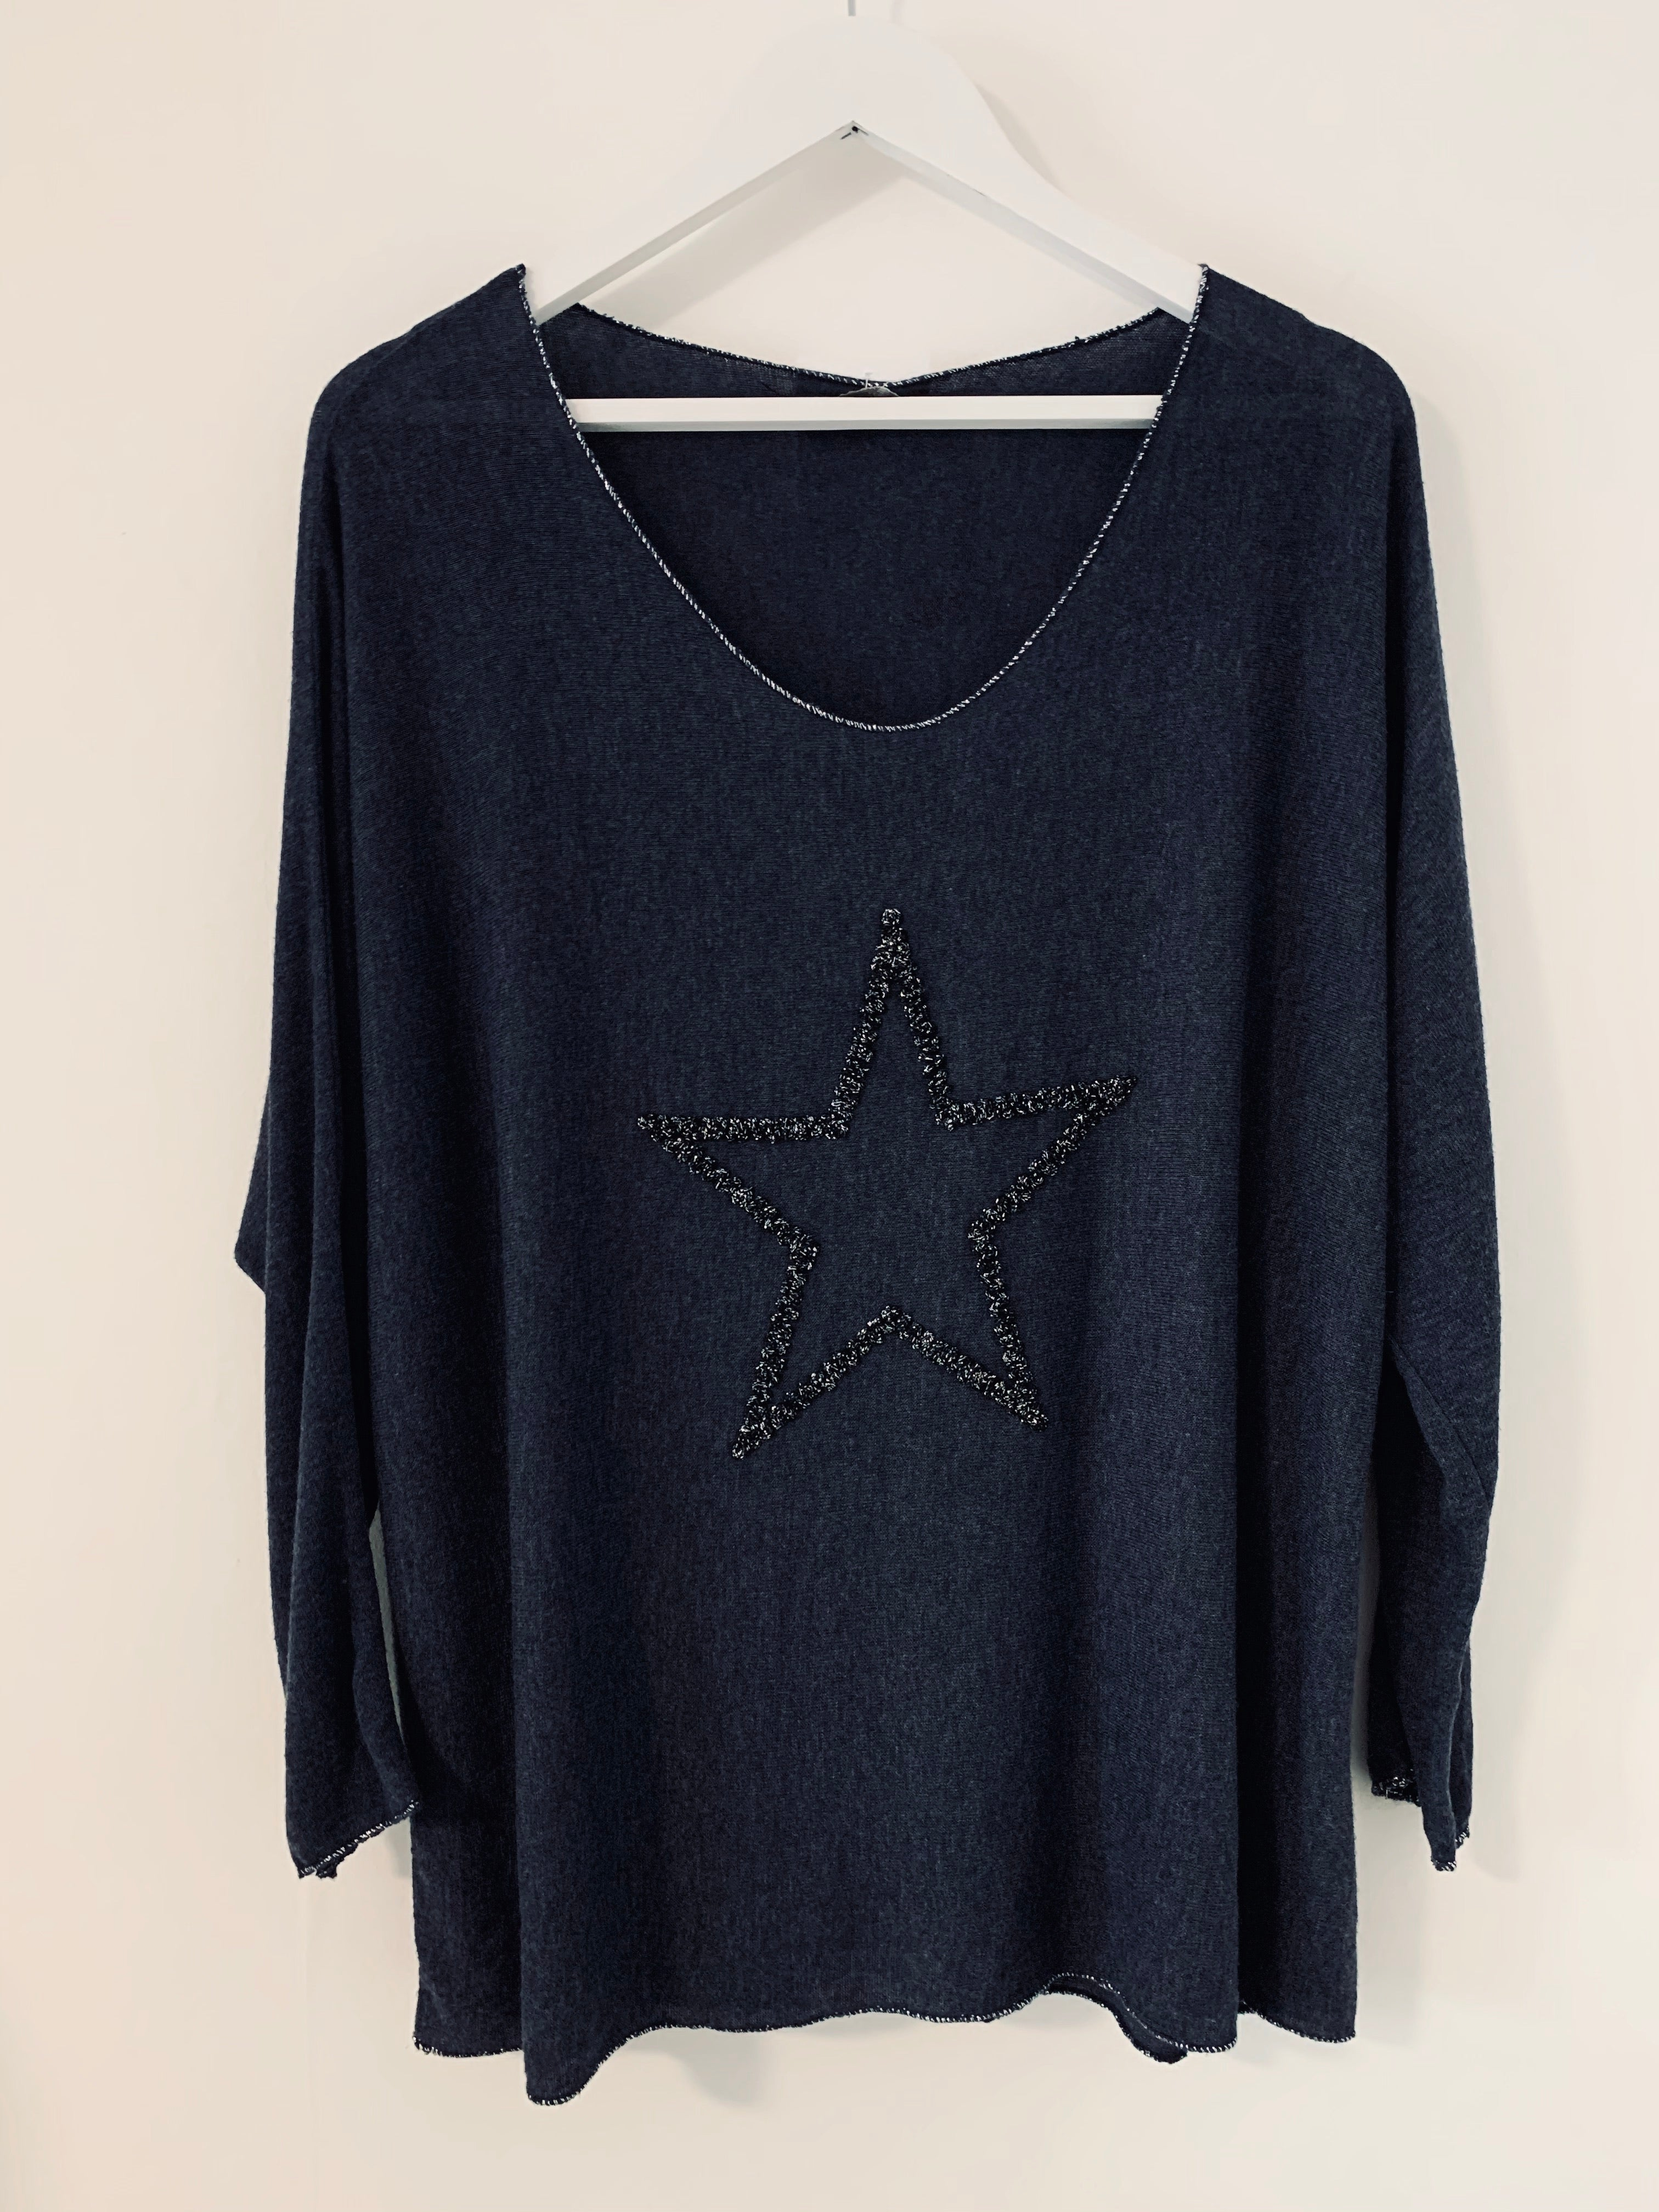 Storm Blue Jumper with Shimmery Star